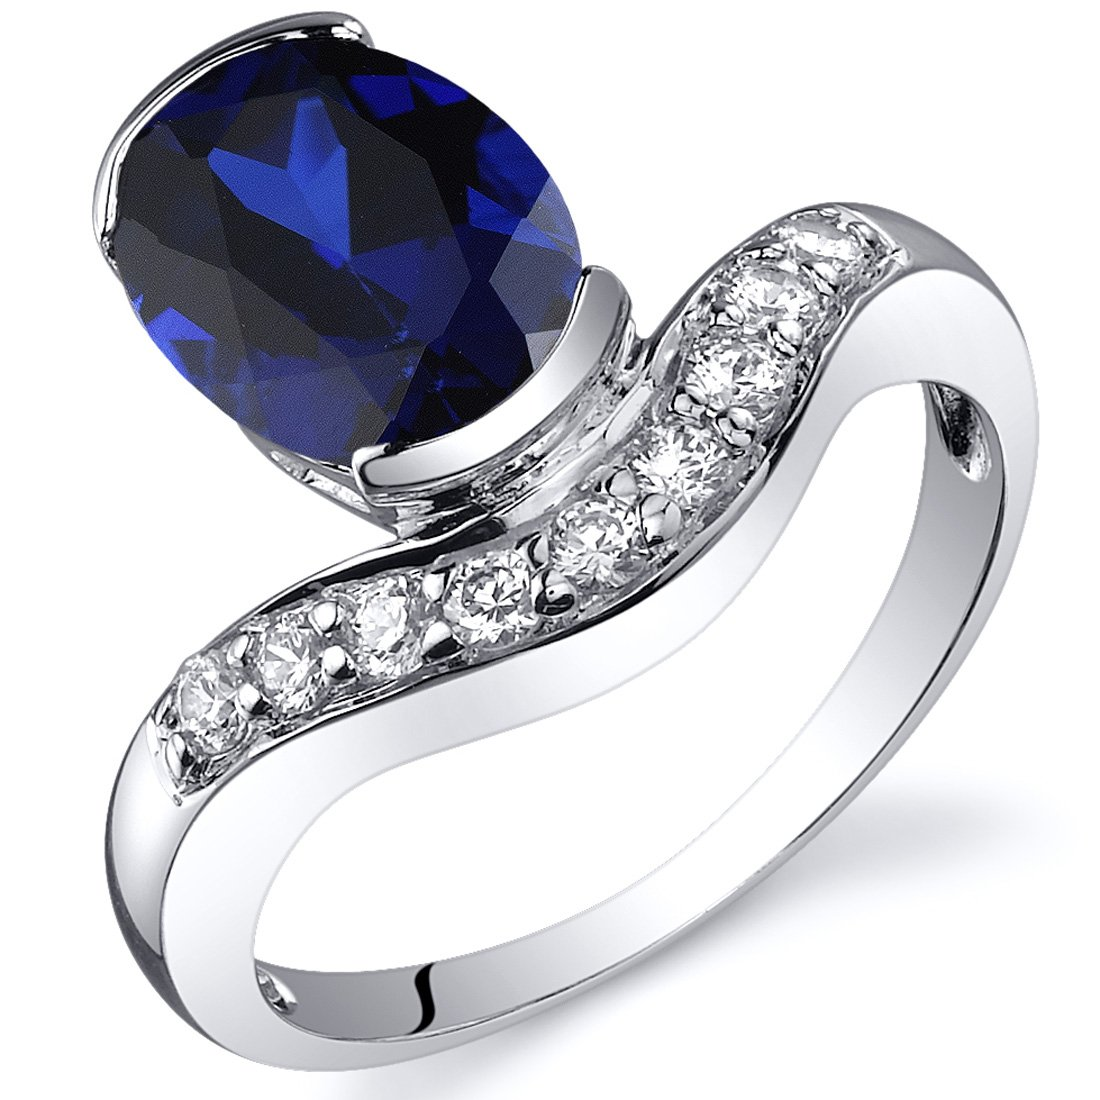 Channel Set 2.75 carats Created Blue Sapphire Ring in Sterling Silver Rhodium Nickel Finish Sizes 5 to 9